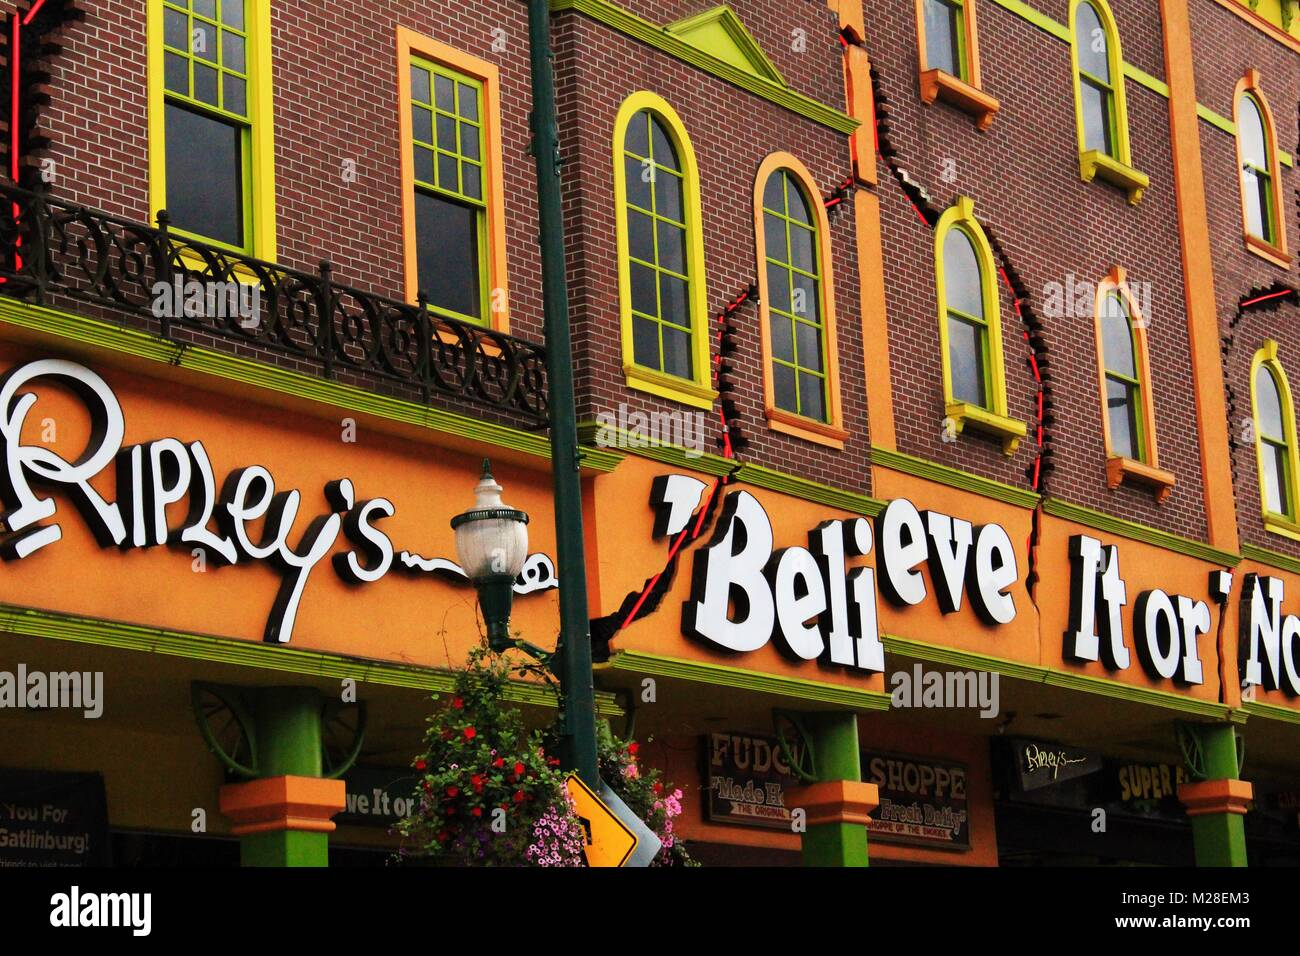 Gatlinburg Tennessee, United States- September 12, 2017- Ripley's Believe It or Not building logo. - Stock Image